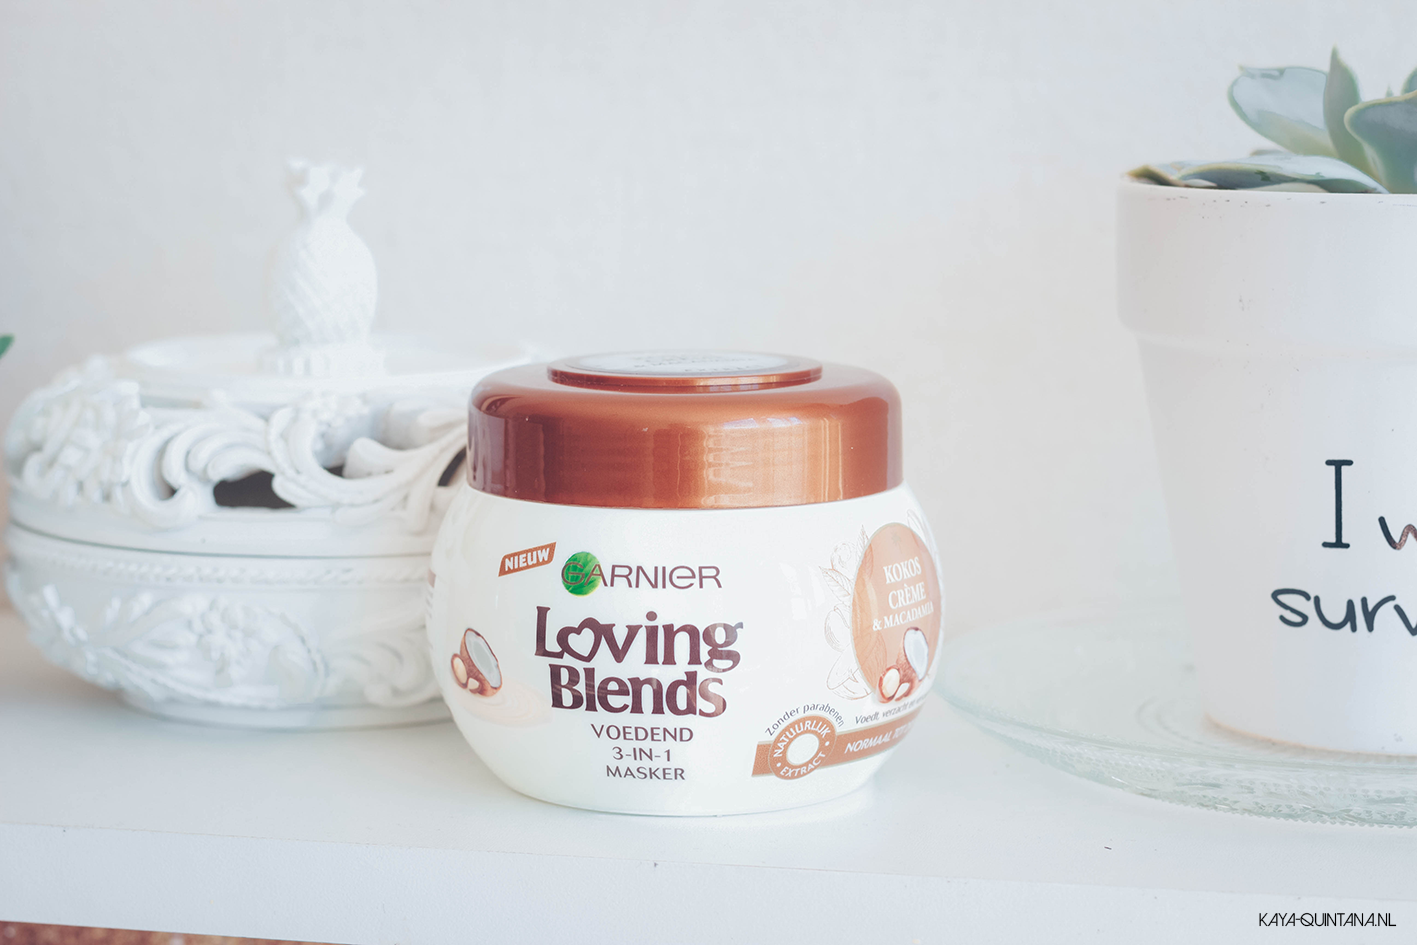 Coconut Milk & Macadamia hair mask by Garnier